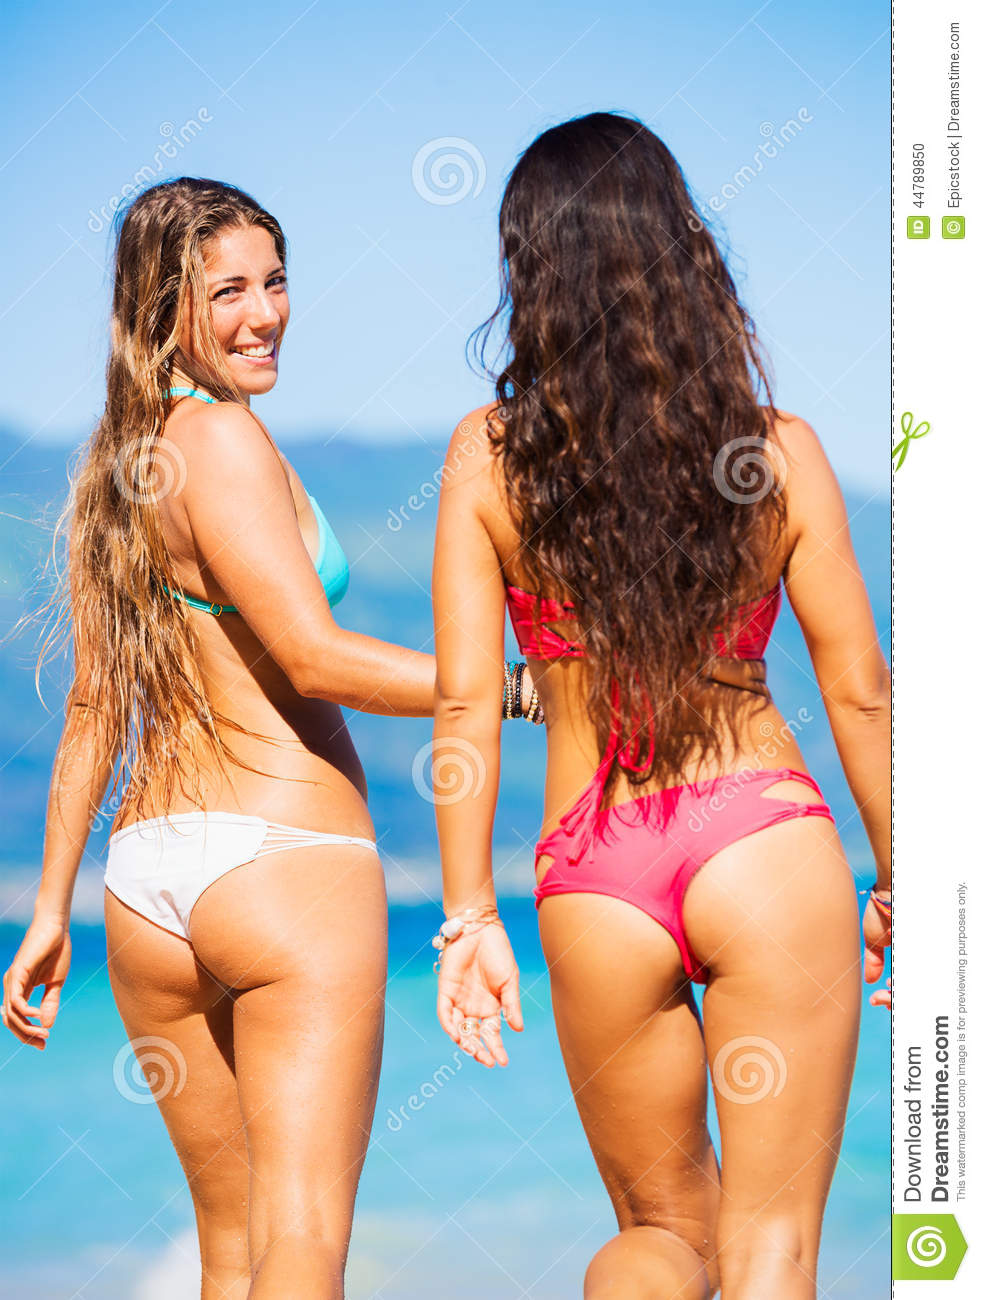 Beautiful young girls at beach